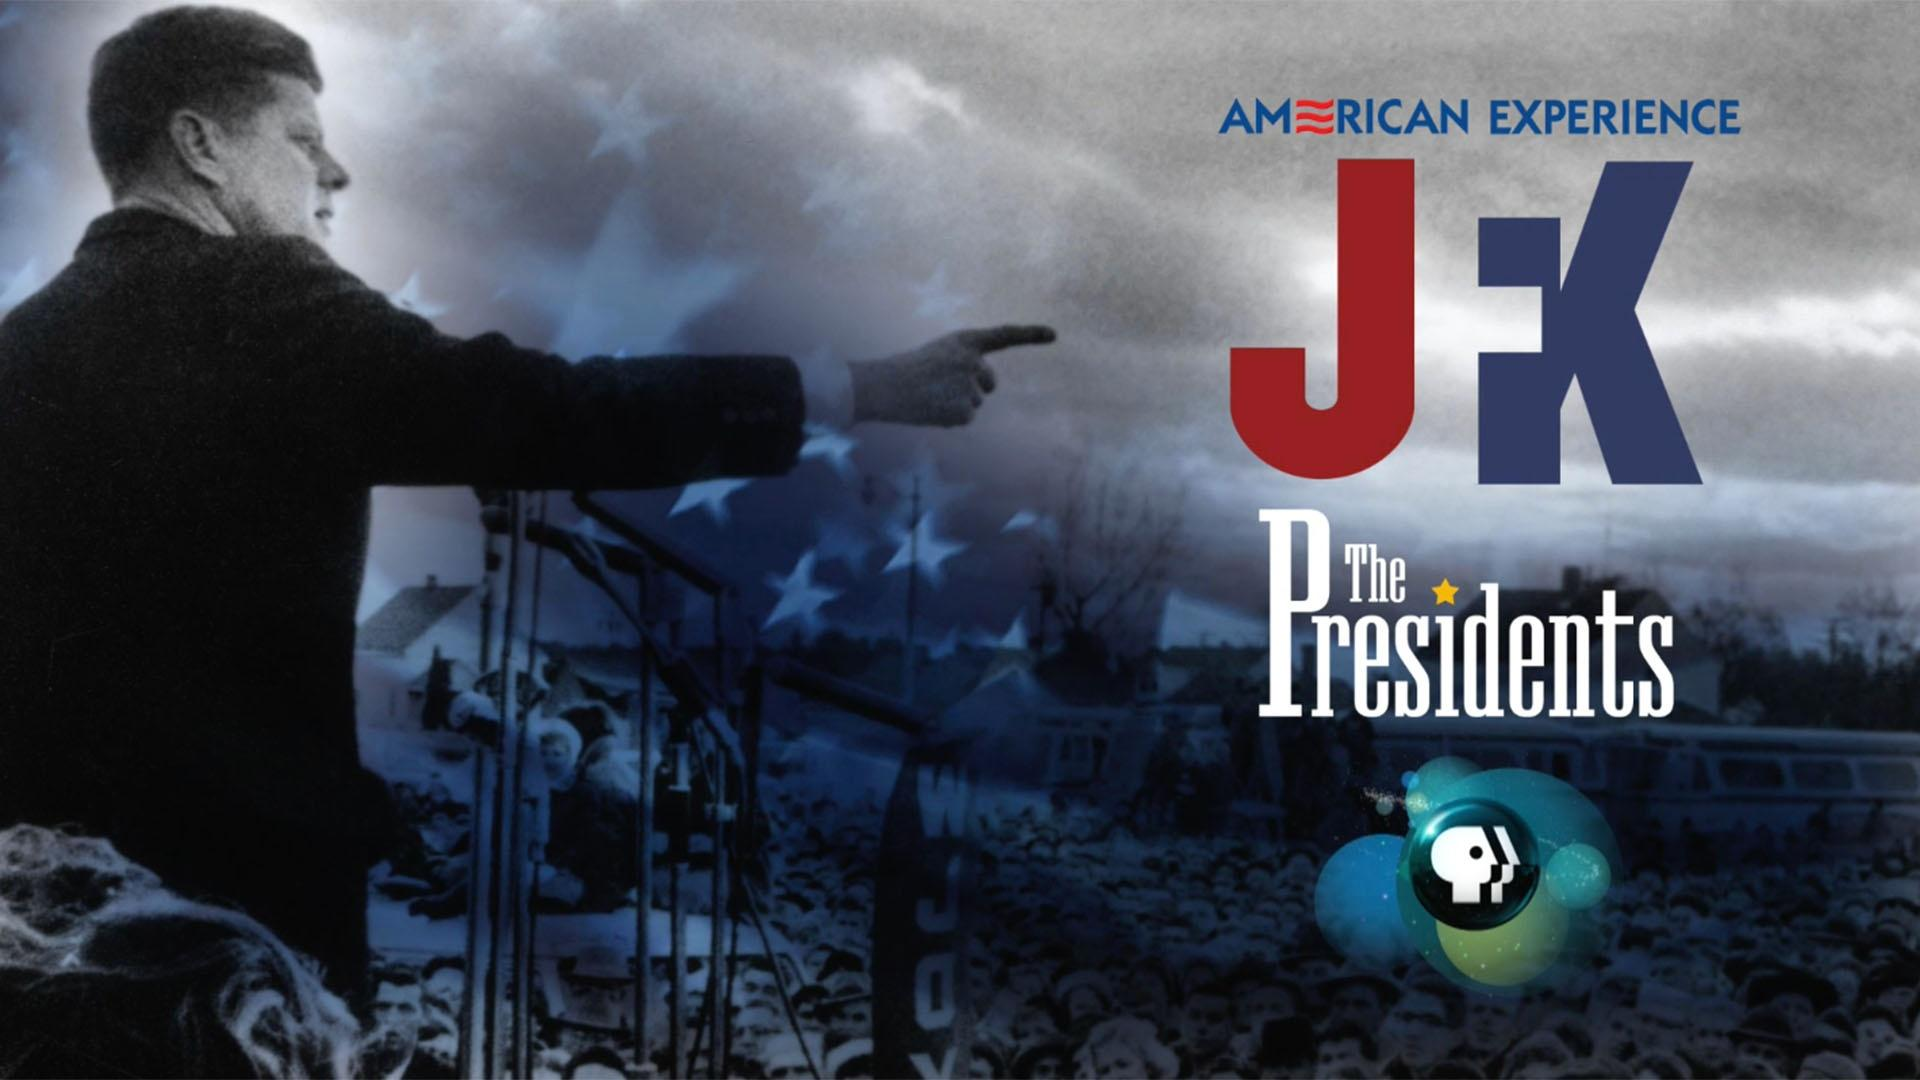 The Presidents 2016: JFK | American Experience | PBS